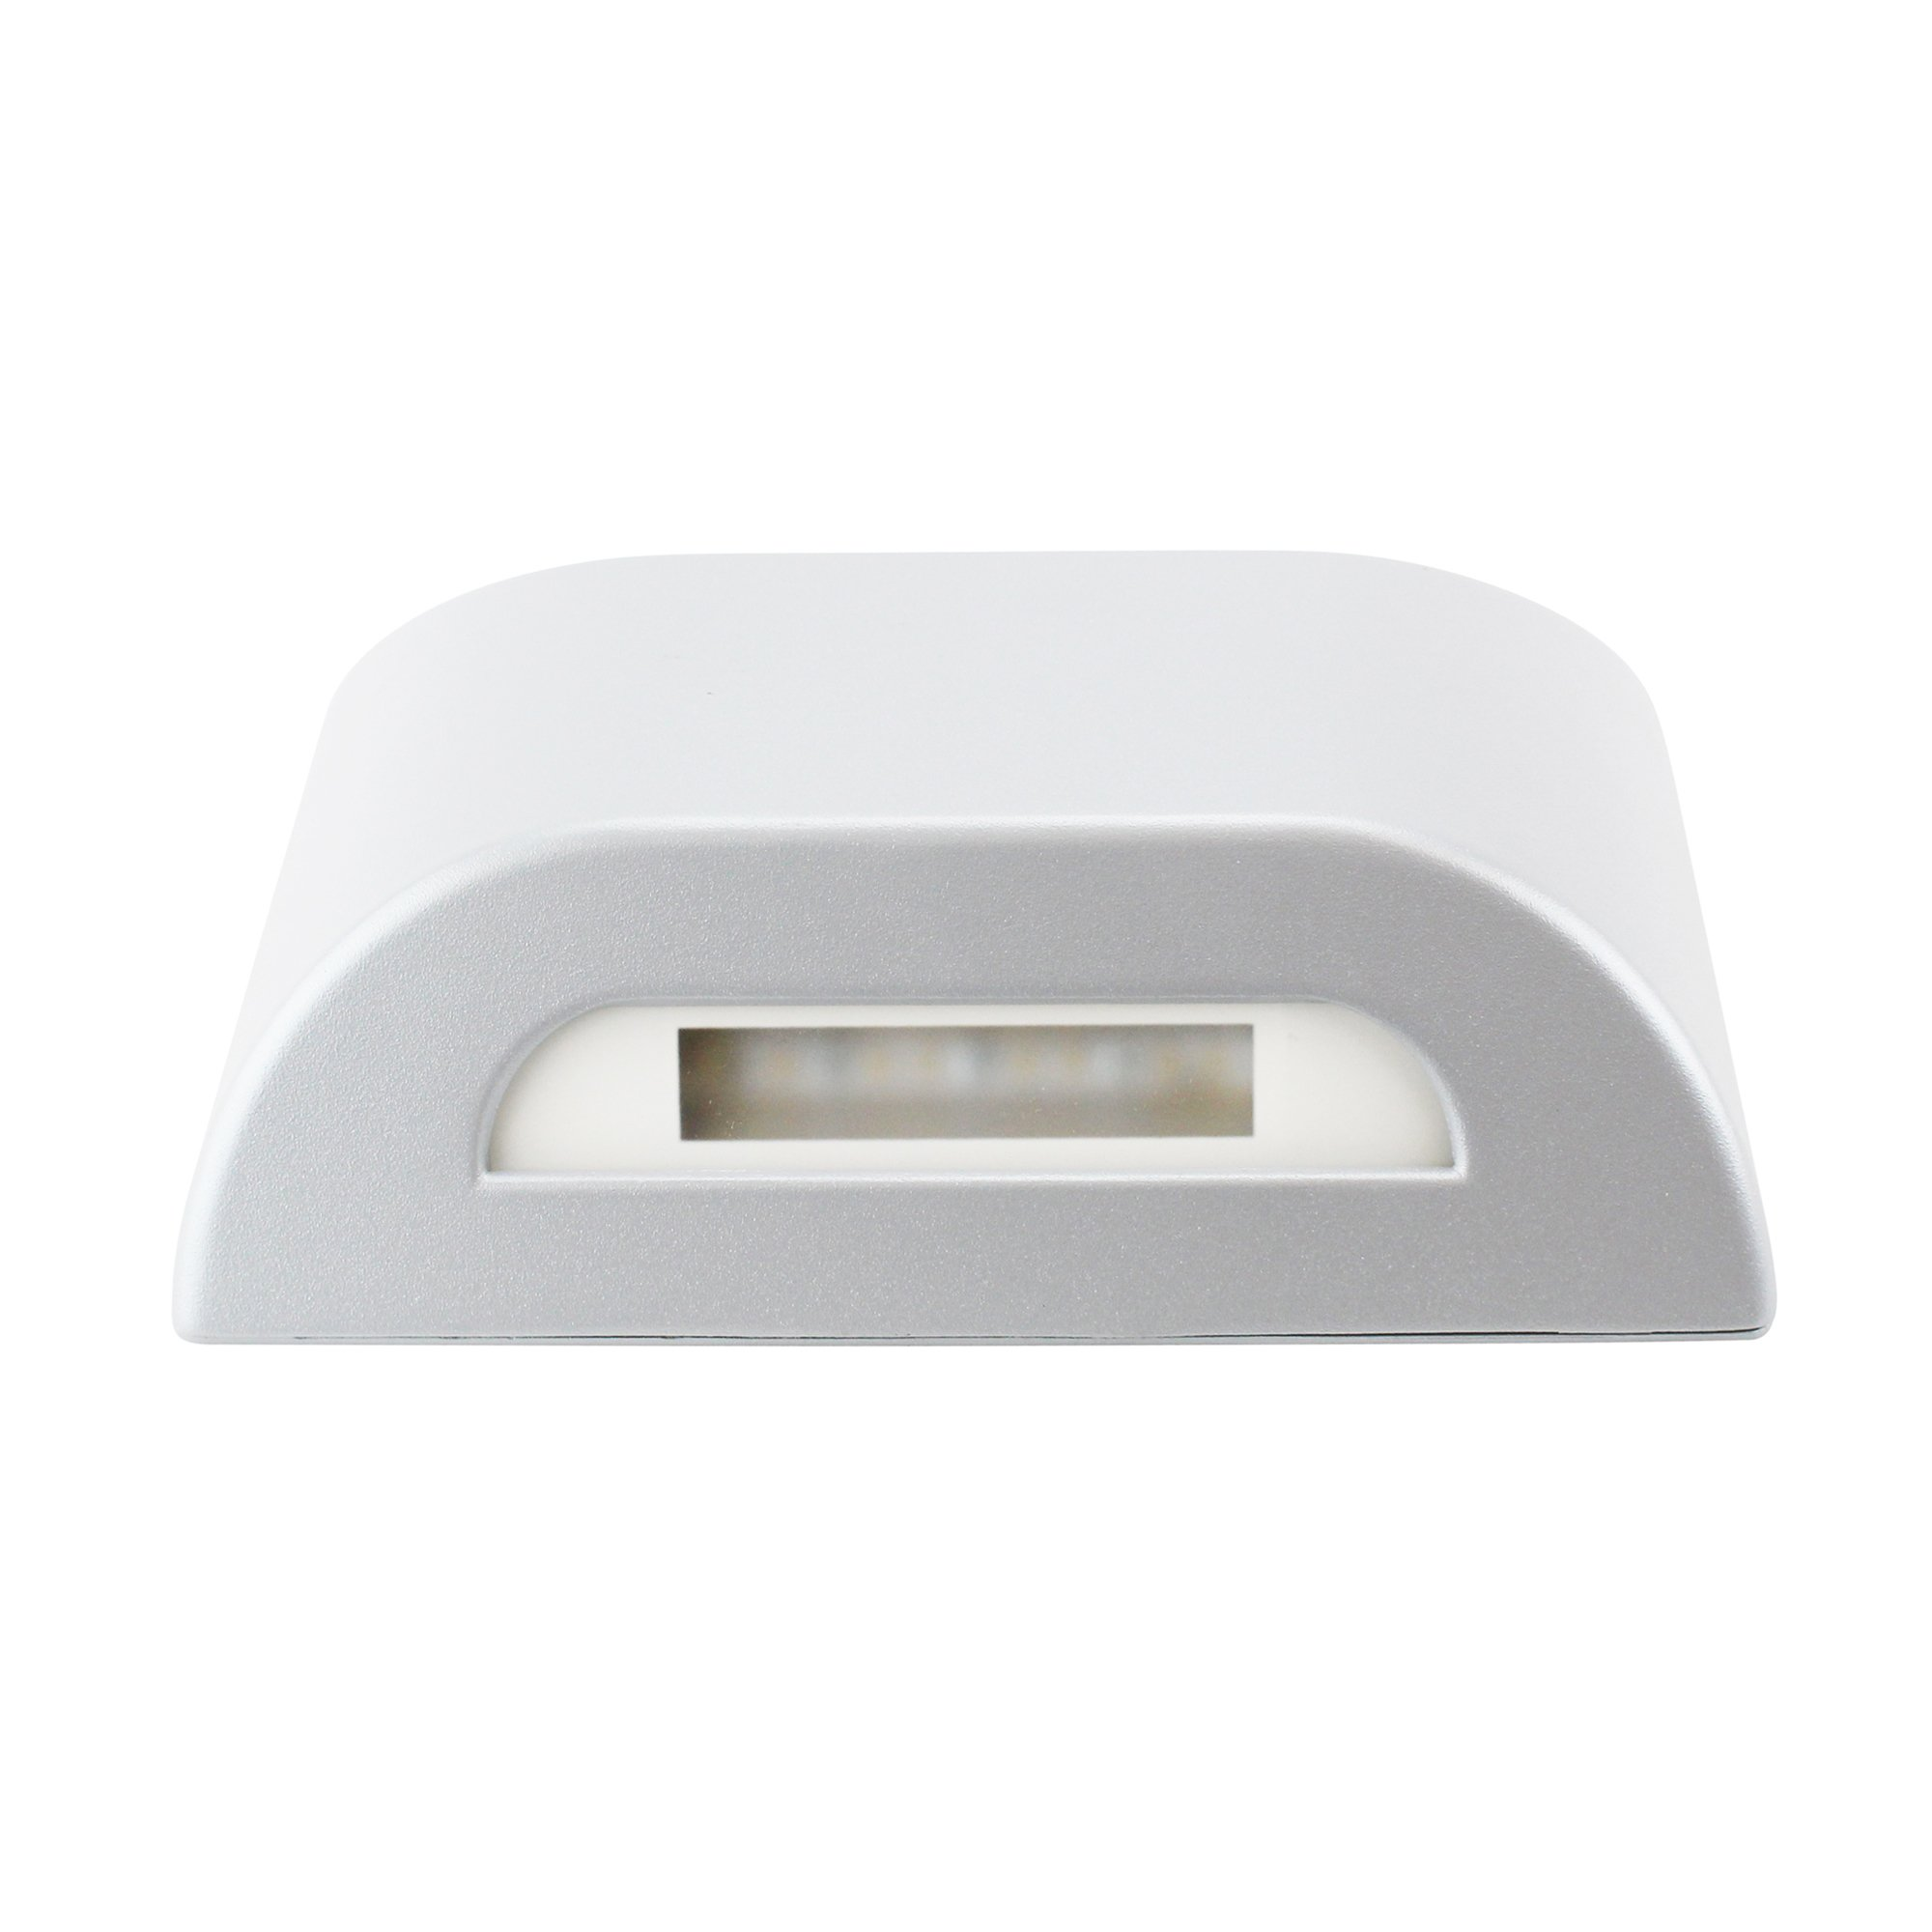 Dual Lite Hubbell Pgf1P Architectual Emergency Light, 120/277V, 17W, High Performace Led Wallpack, I